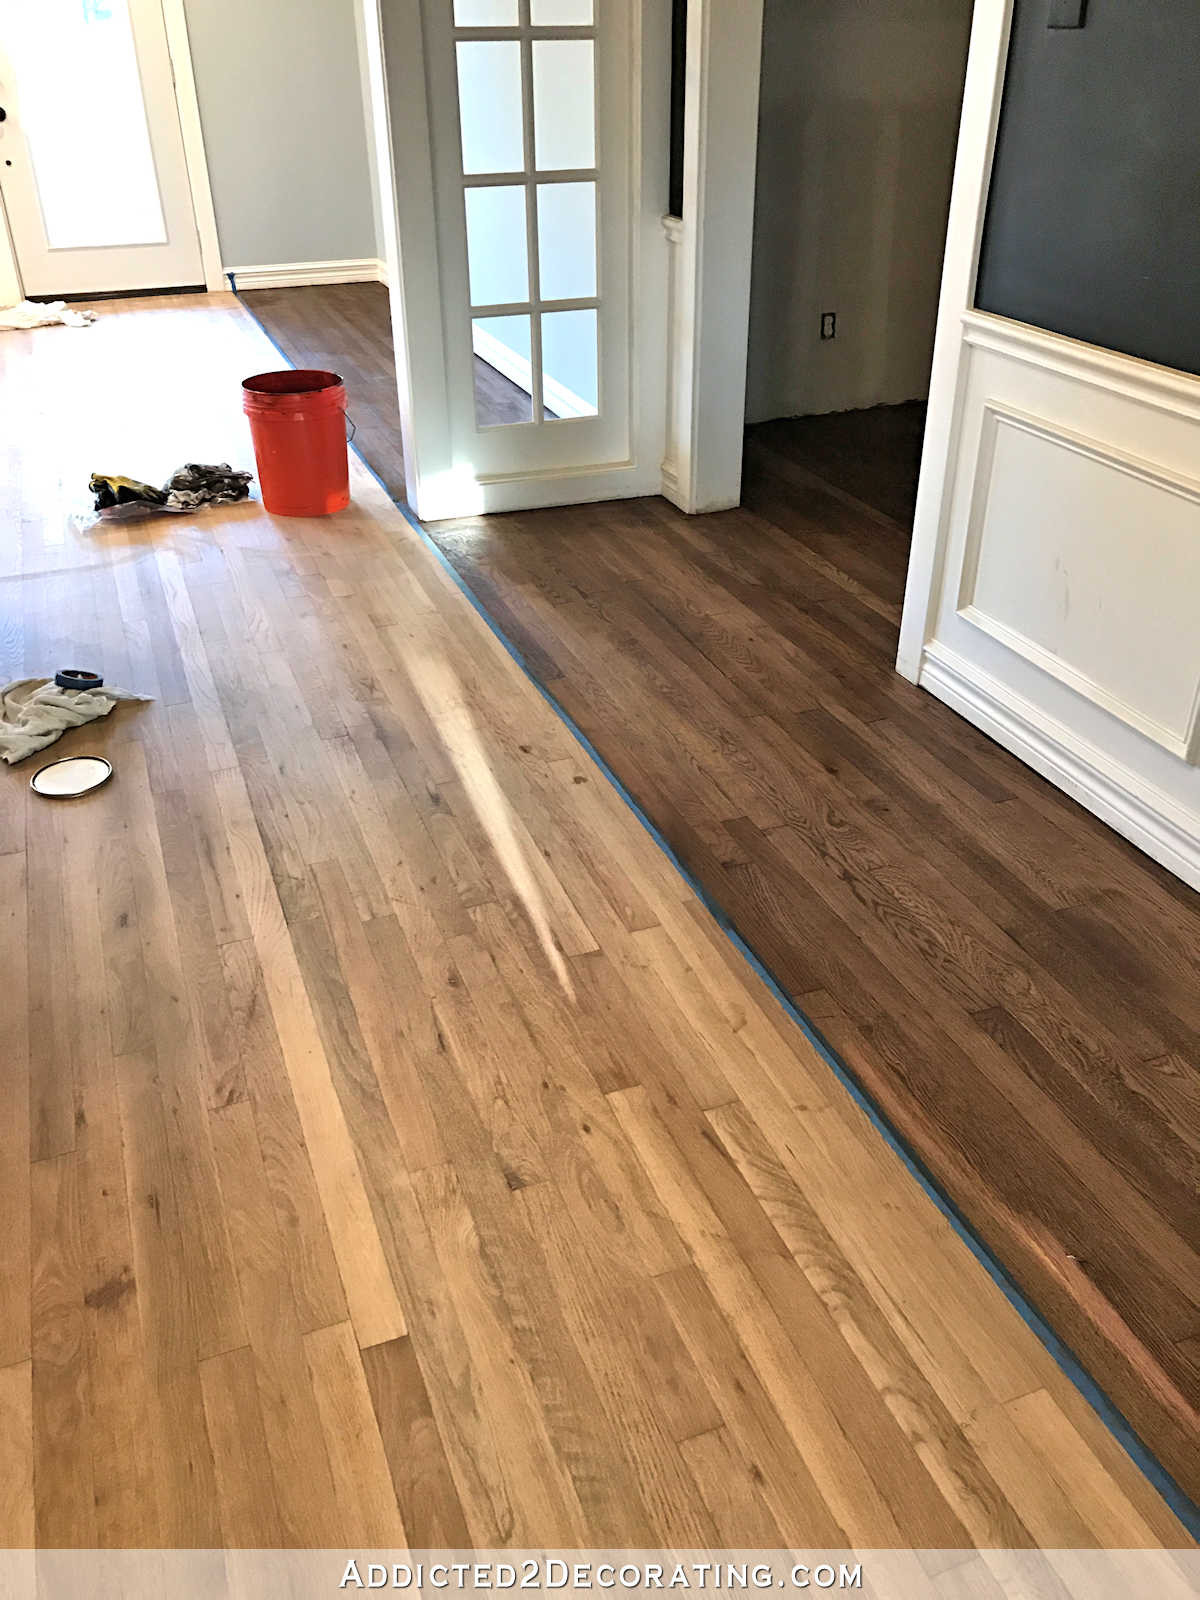 best diy cleaner for hardwood floors of adventures in staining my red oak hardwood floors products process with regard to staining red oak hardwood floors 6 stain on partial floor in entryway and music